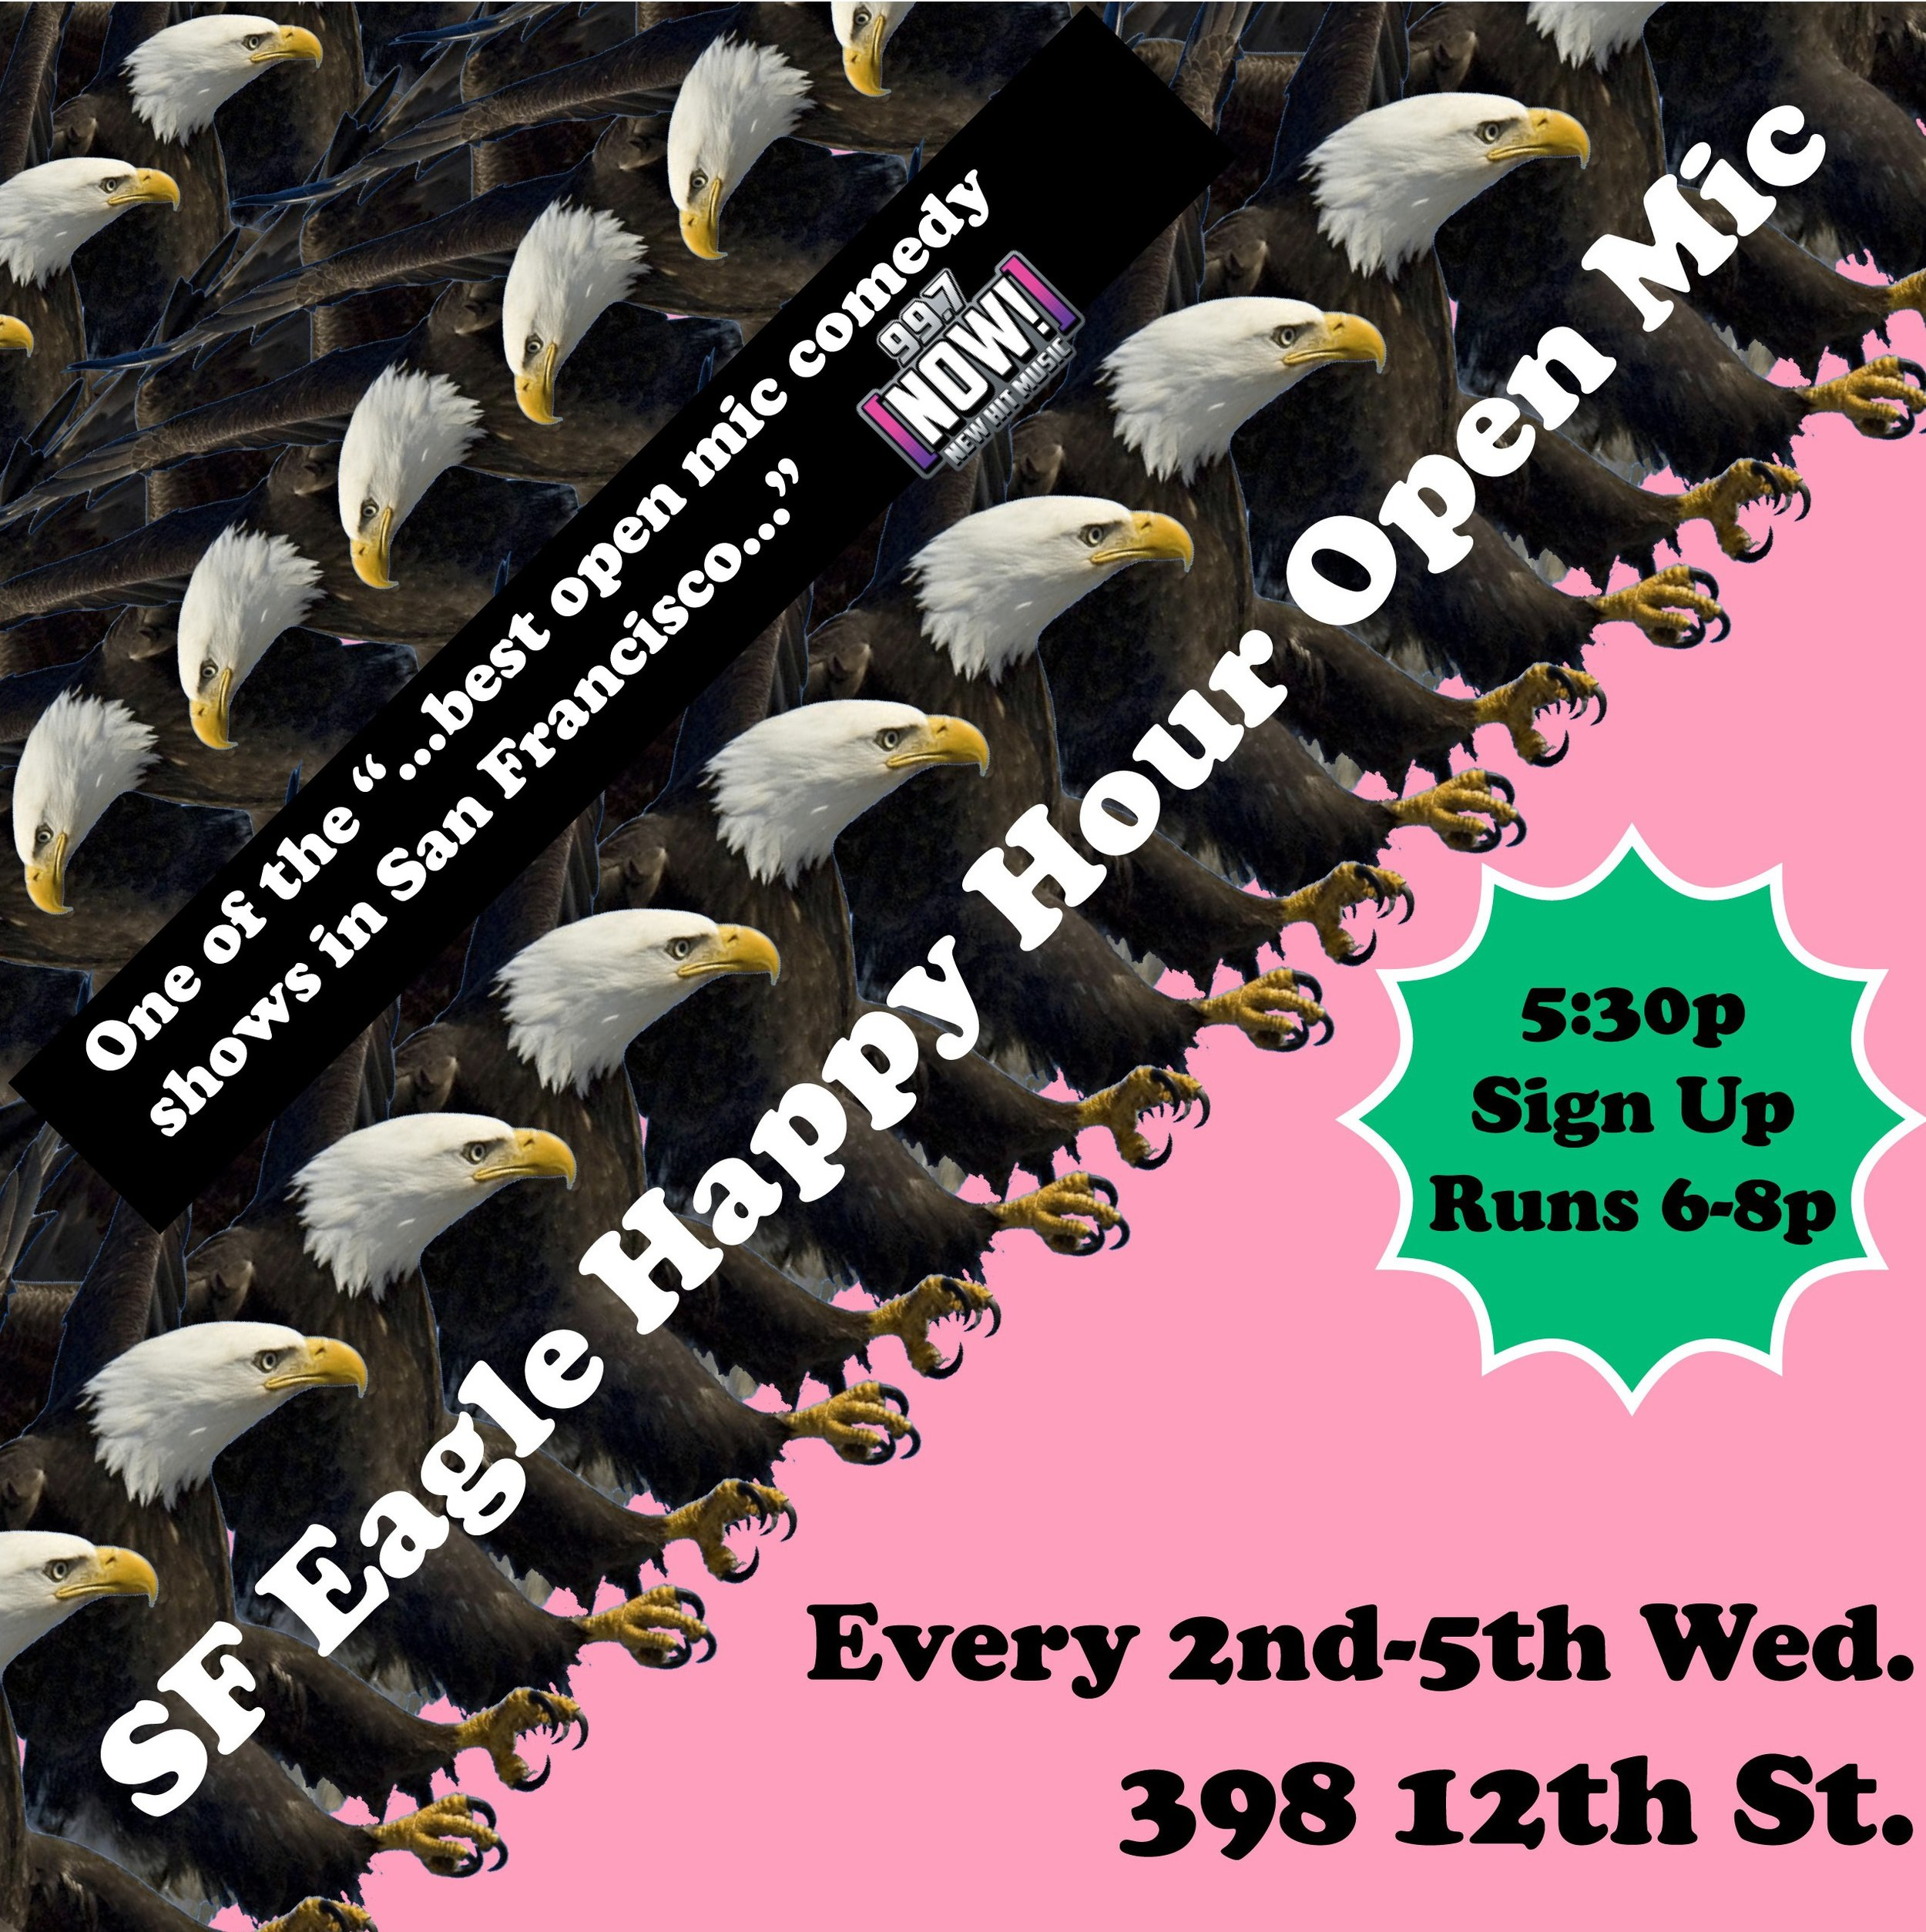 Best open mic SF Eagle comedy poster